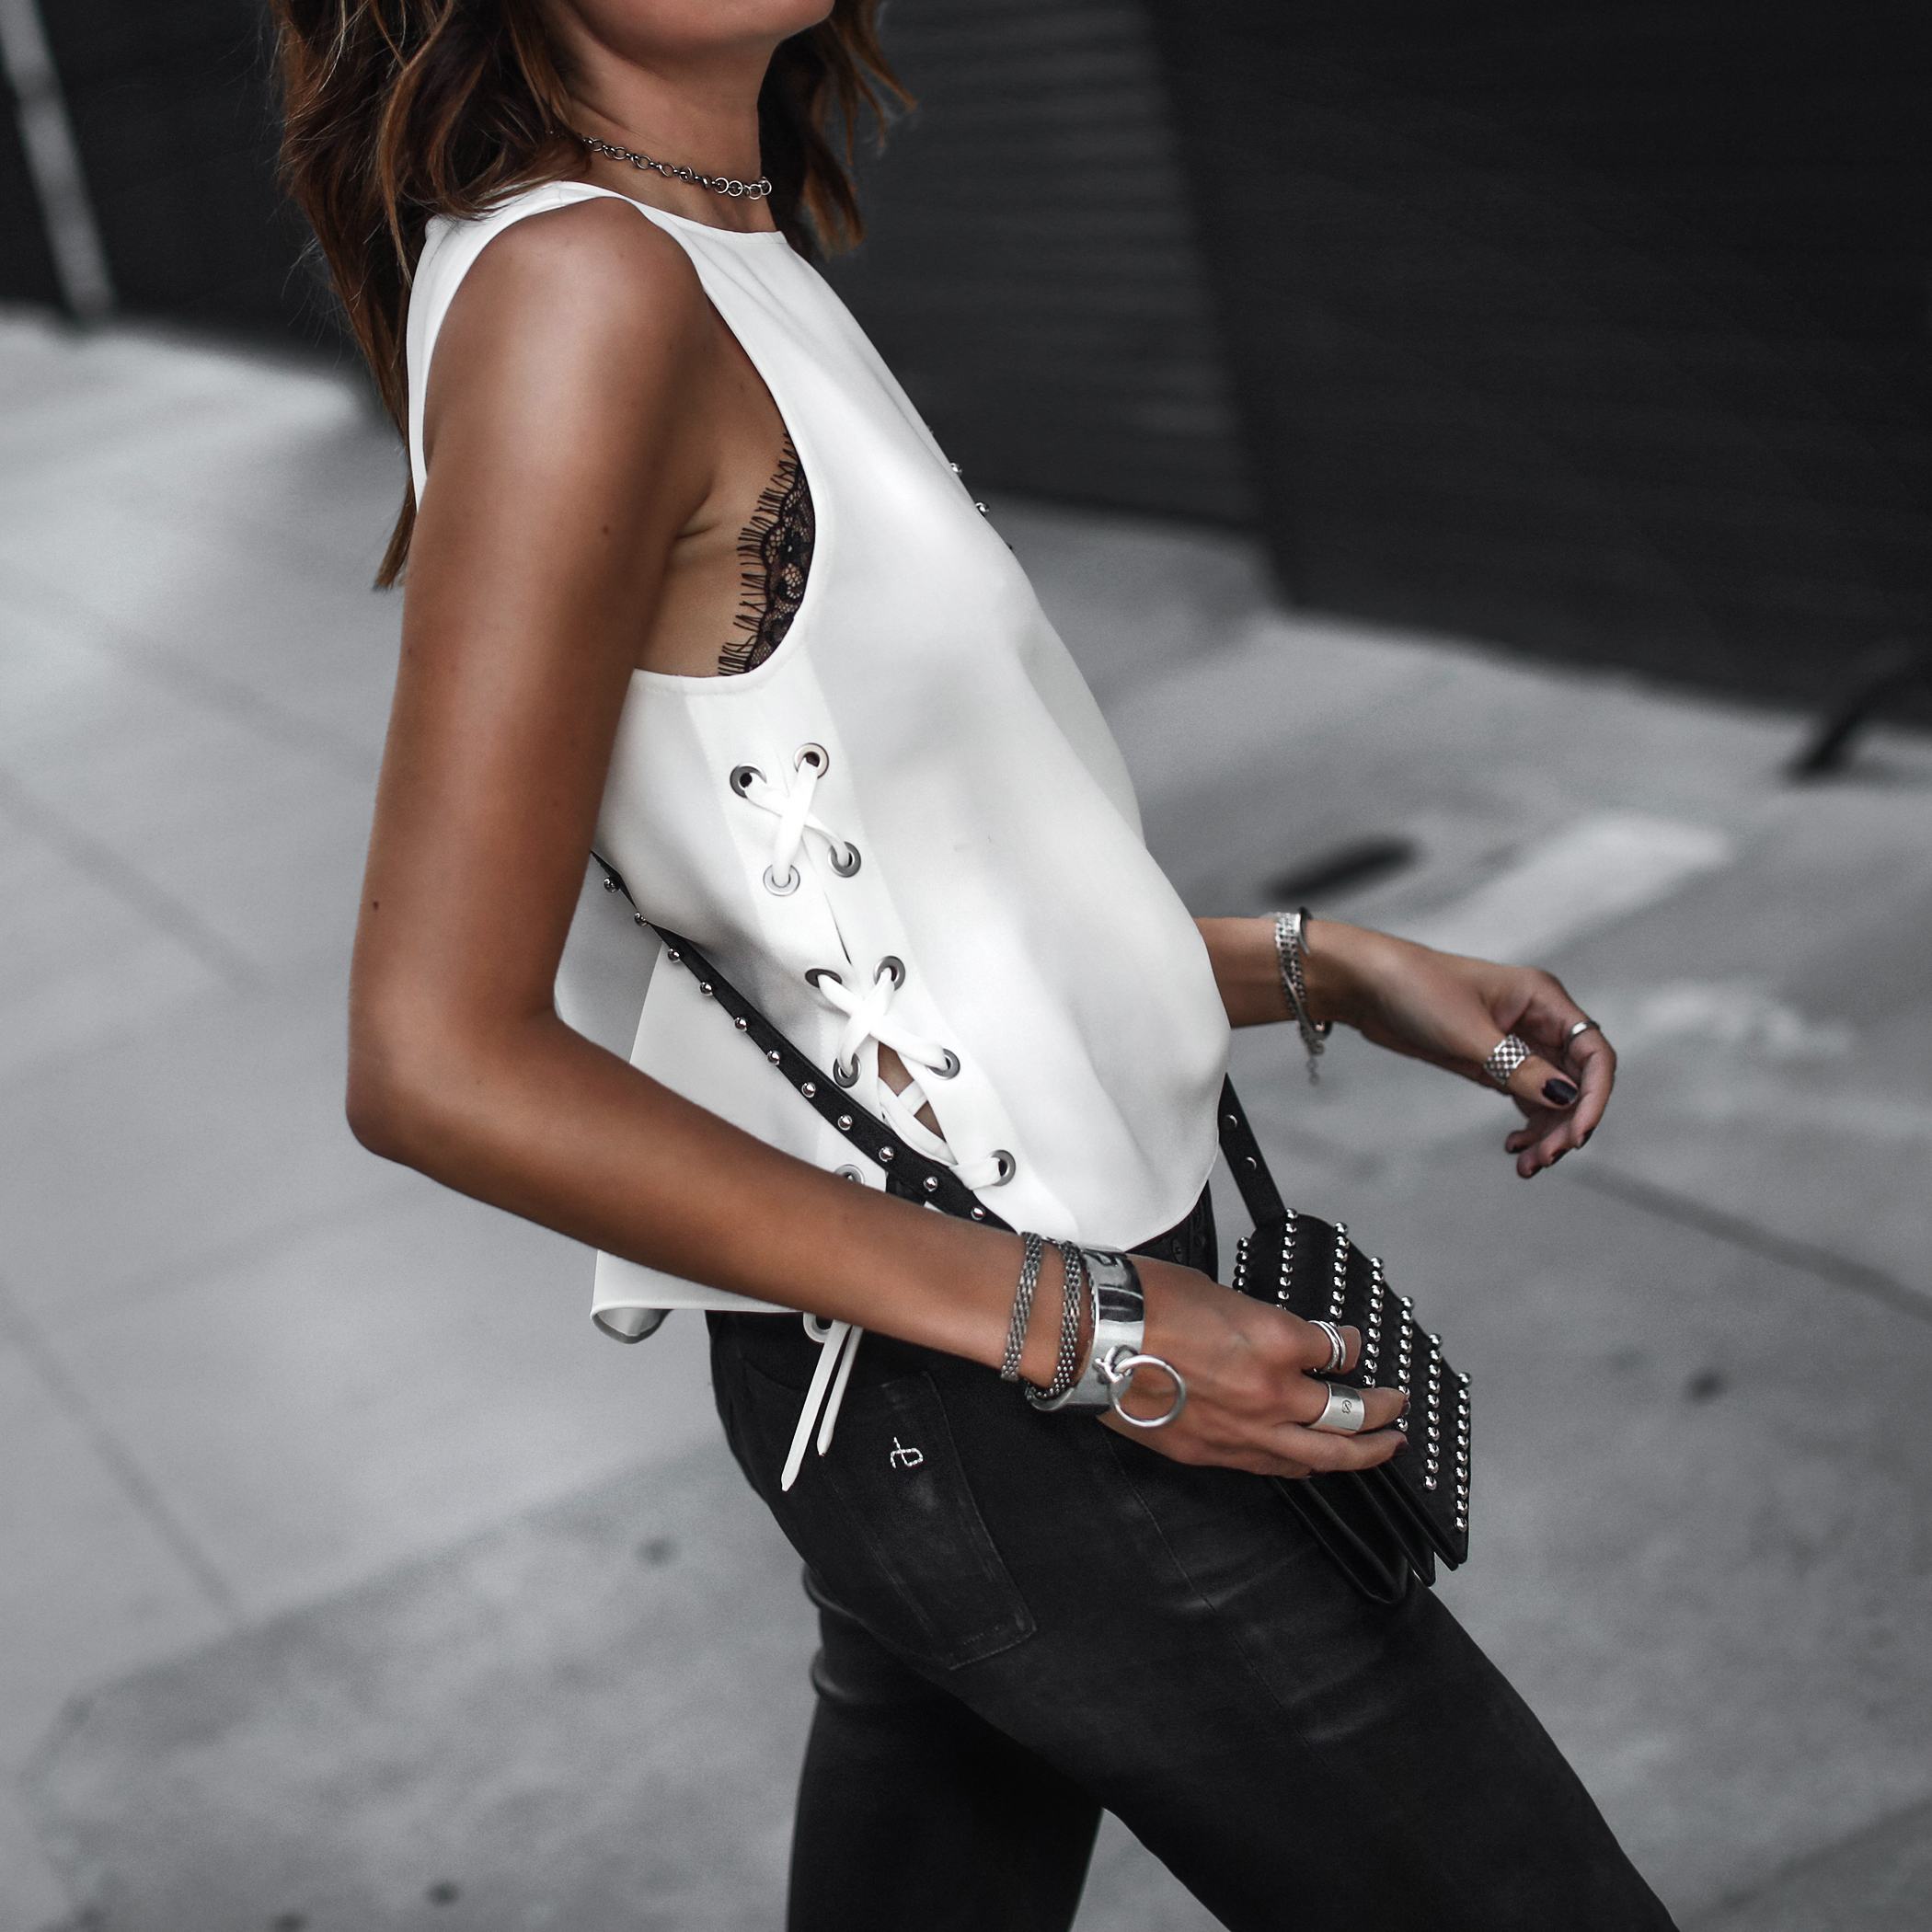 lace-up tank top, black leather pants, studded crossbody bag, lace bralette